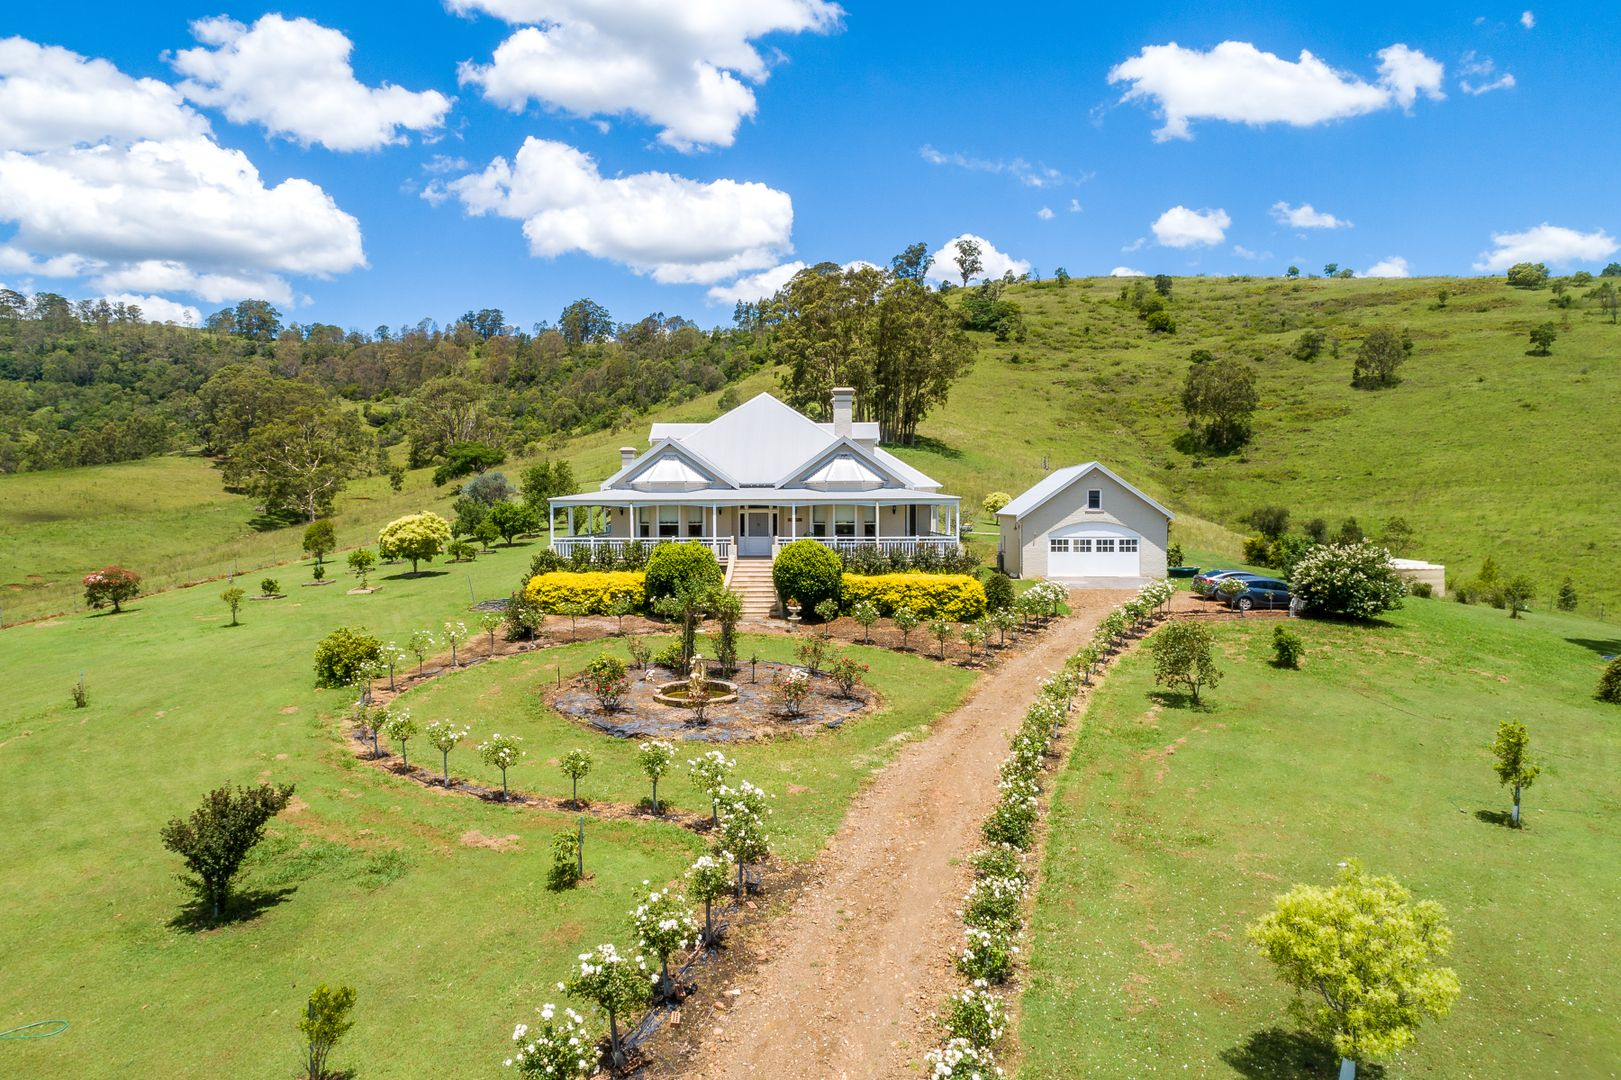 656 Clements Road, Lewinsbrook Via, East Gresford NSW 2311, Image 0